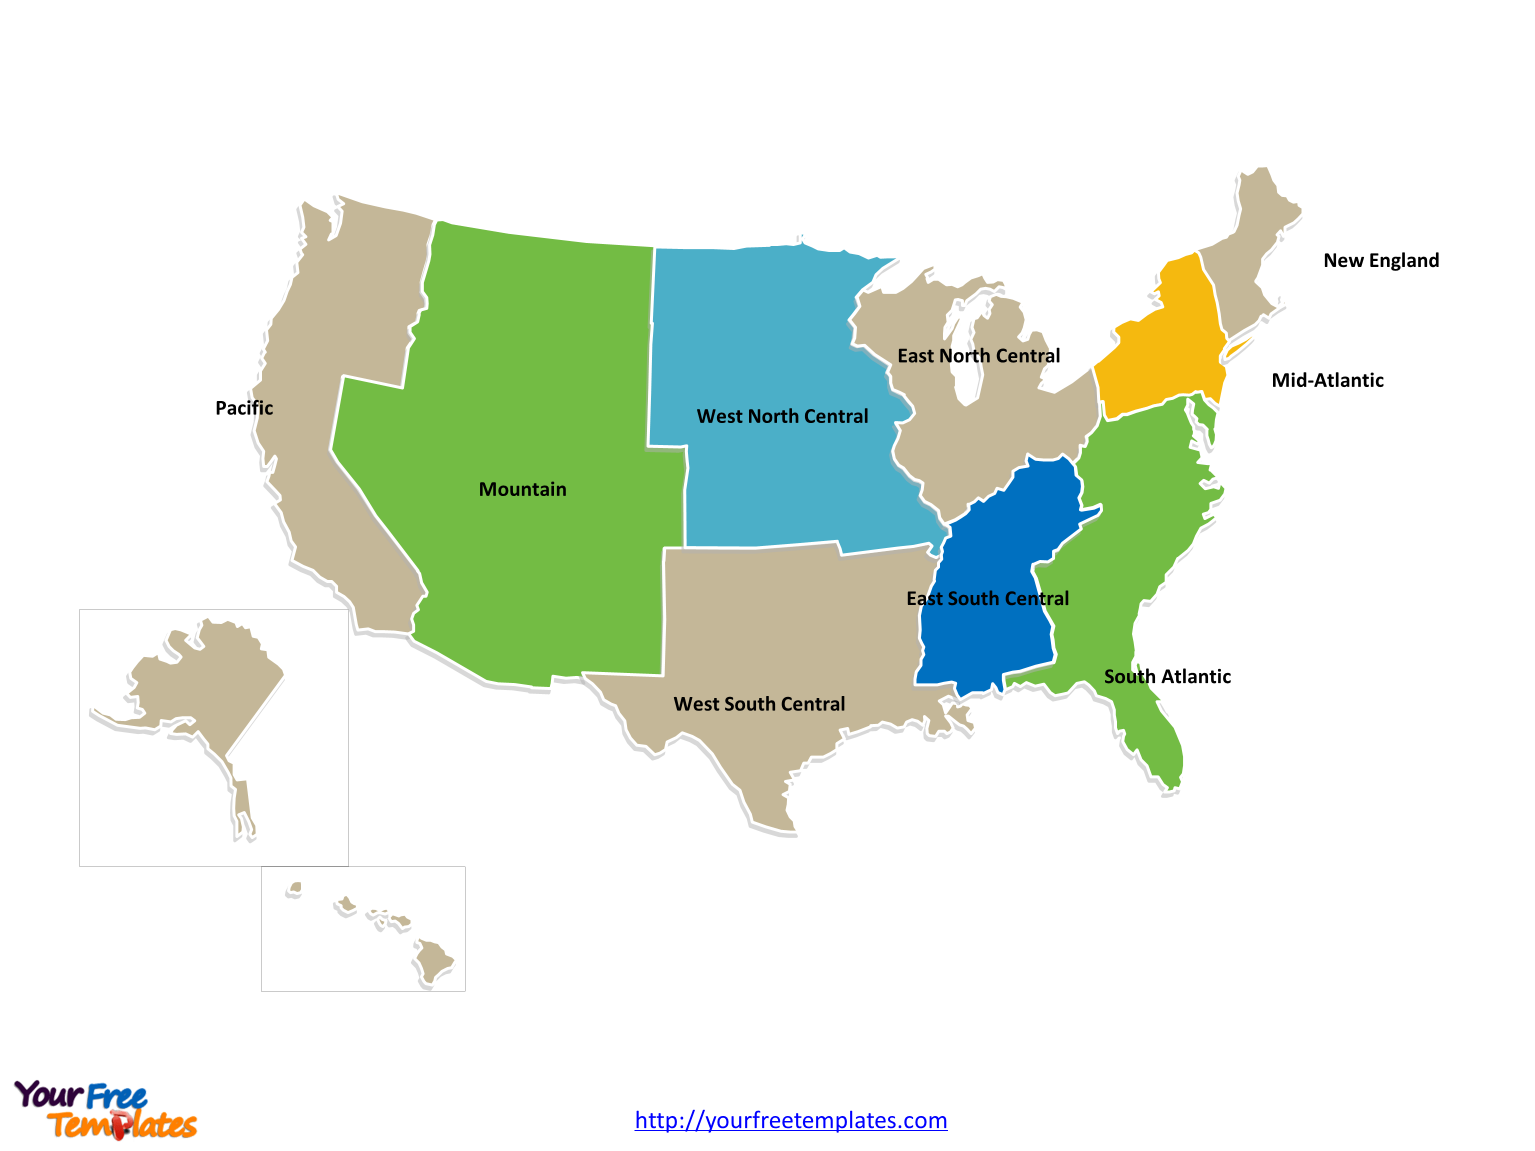 Free USA Region PowerPoint Map Free PowerPoint Templates - Mid east usa map